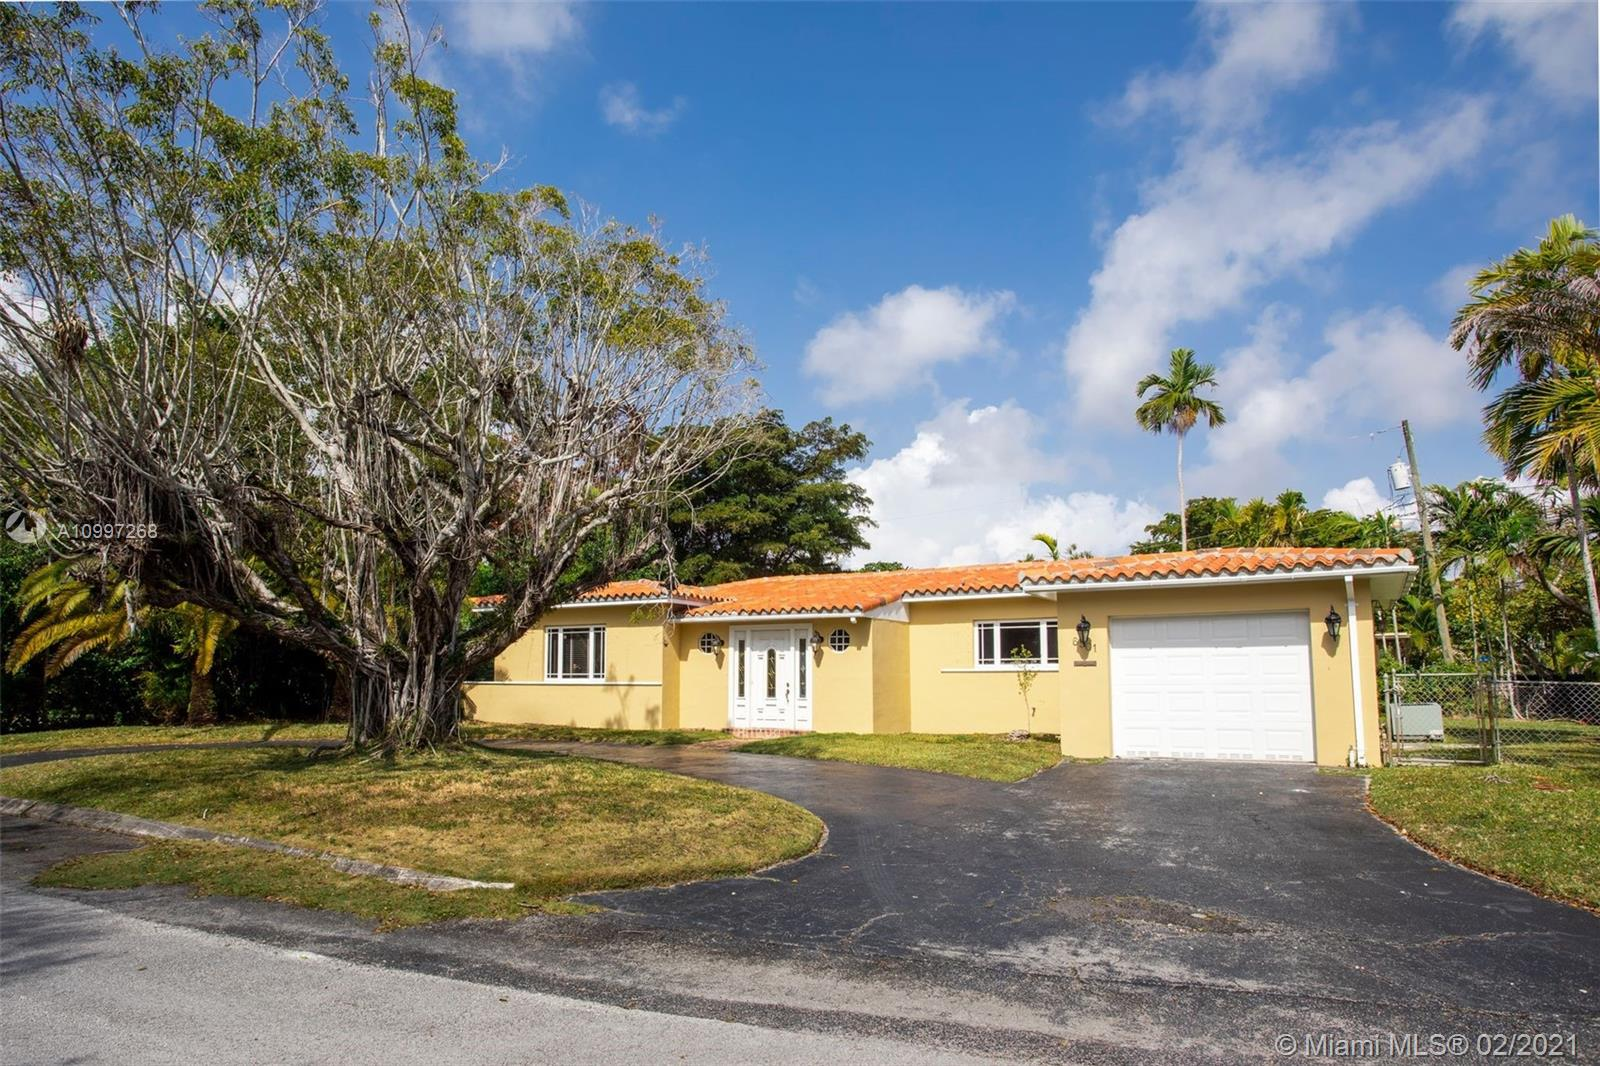 South Miami - 6501 SW 65th Ter, South Miami, FL 33143